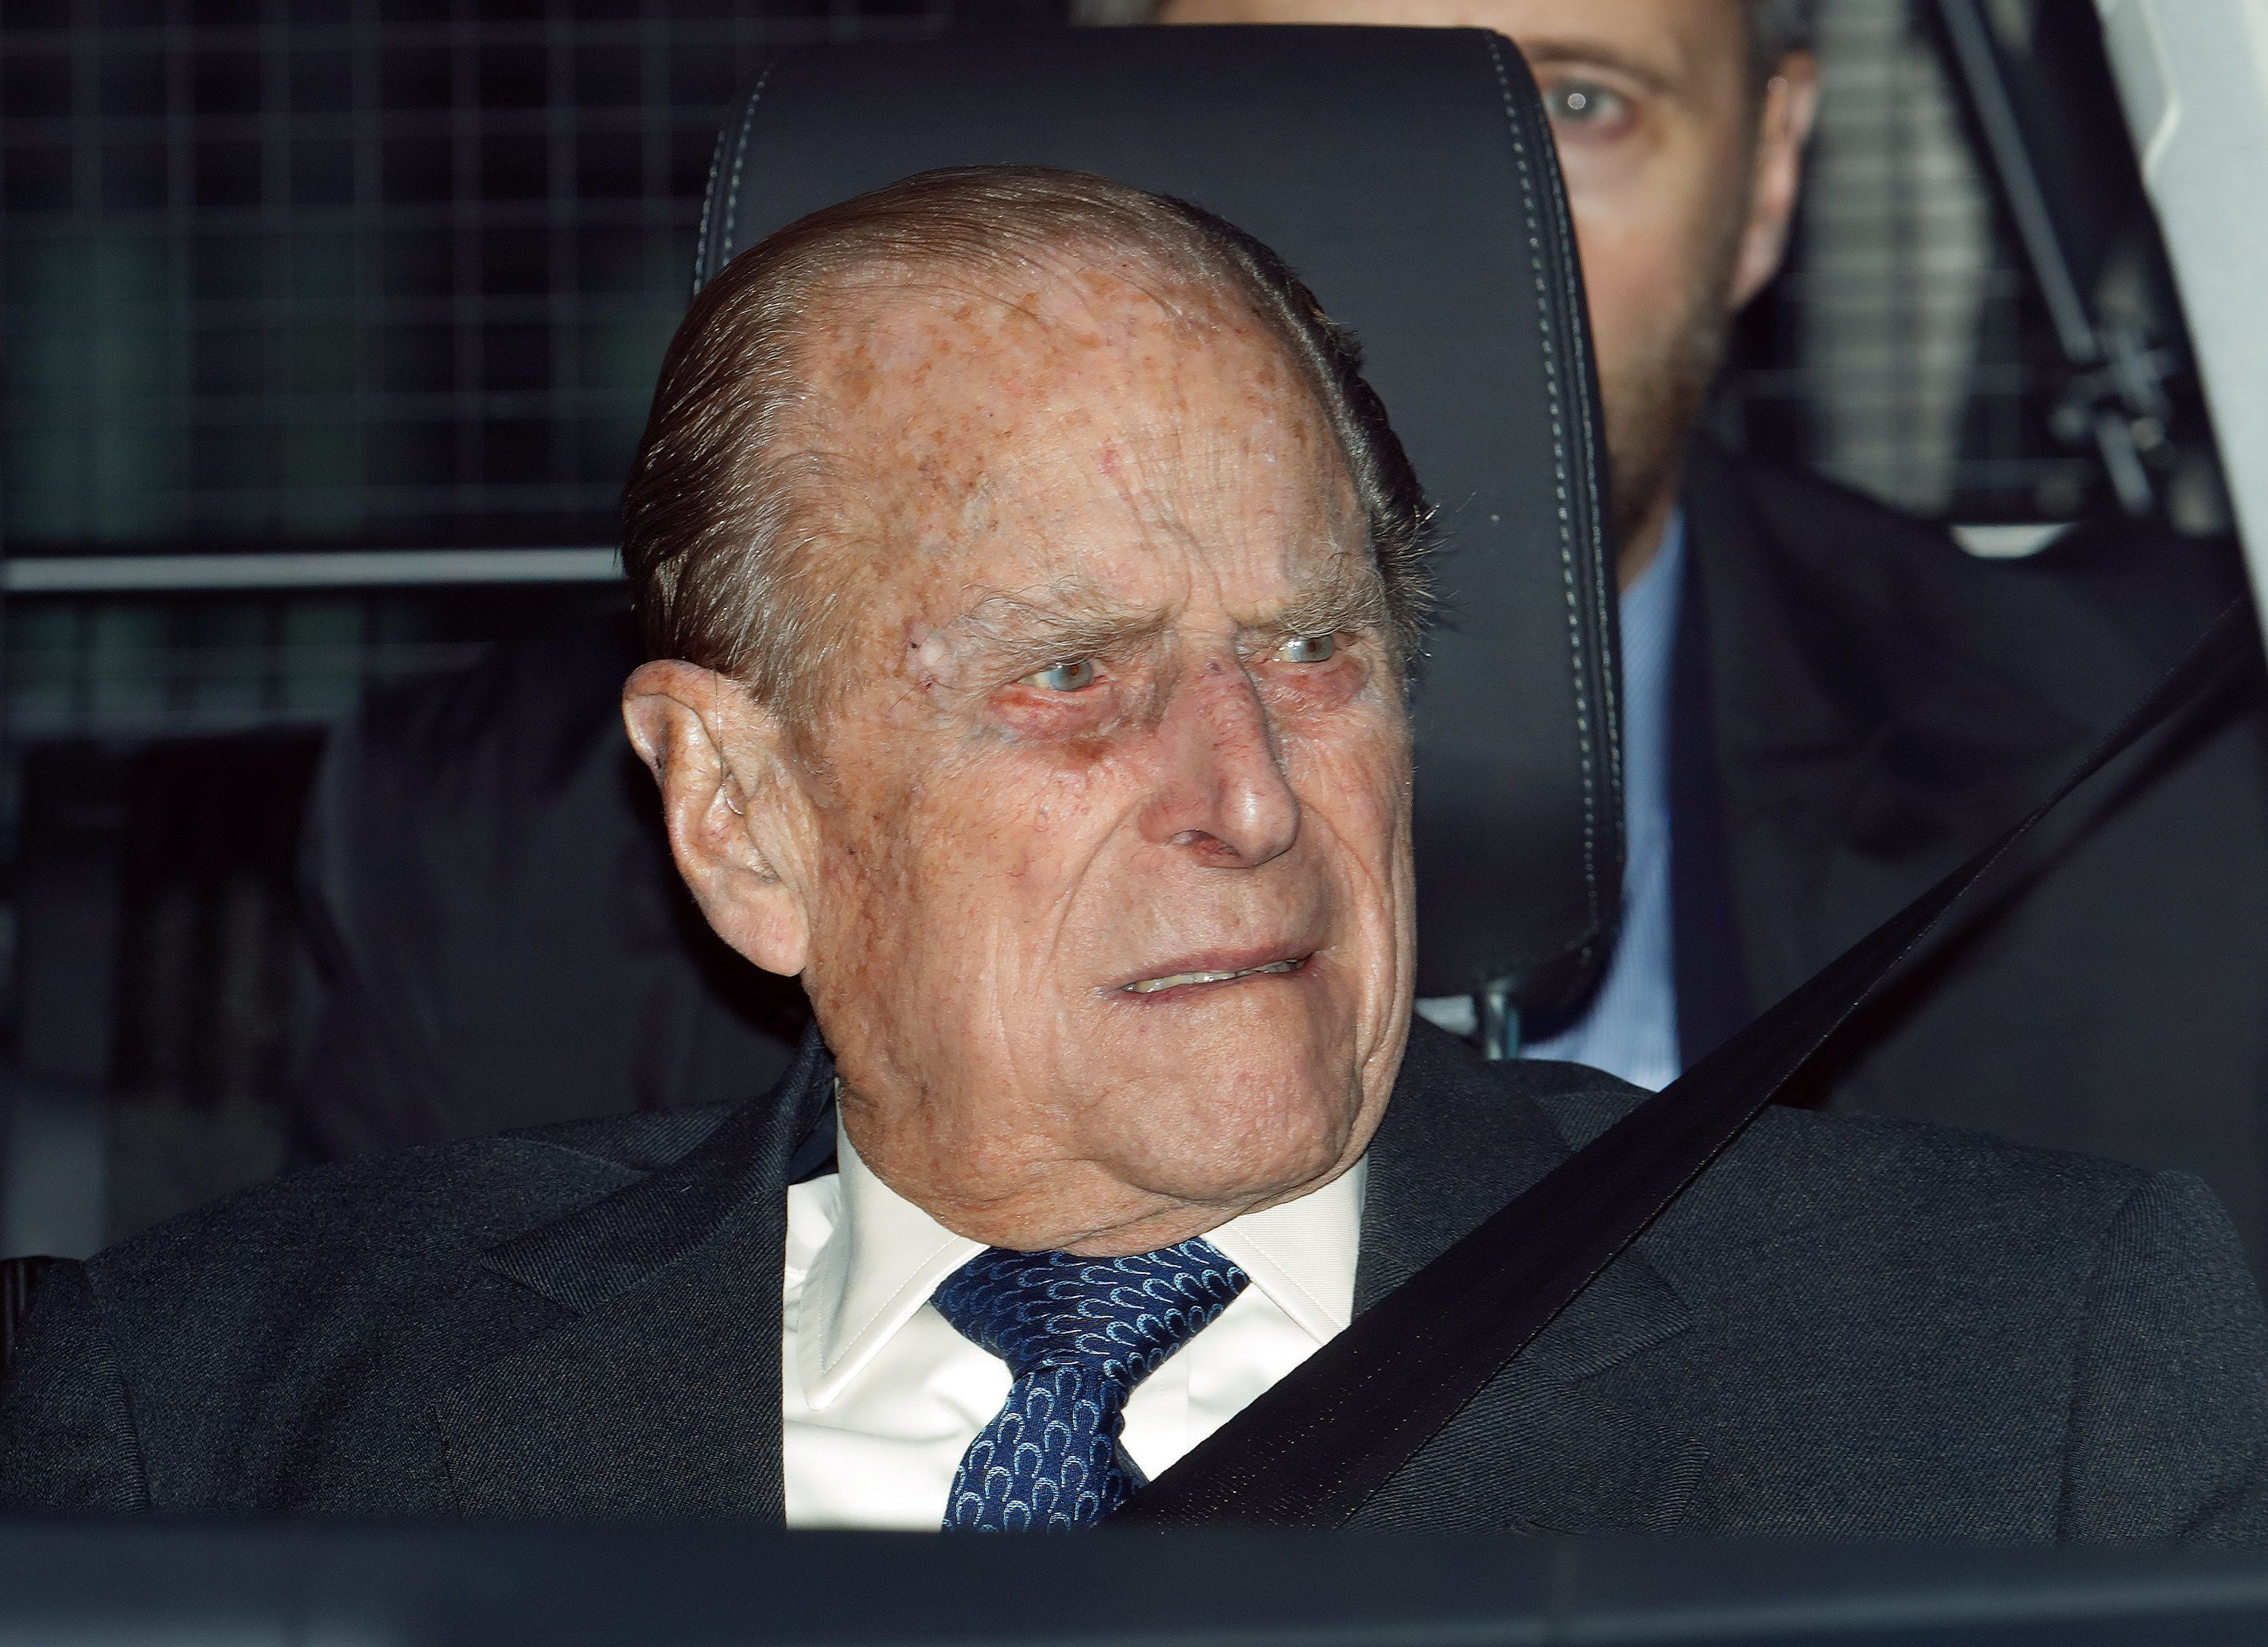 Britain's Prince Philip (97) surrenders driving licence after auto  crash